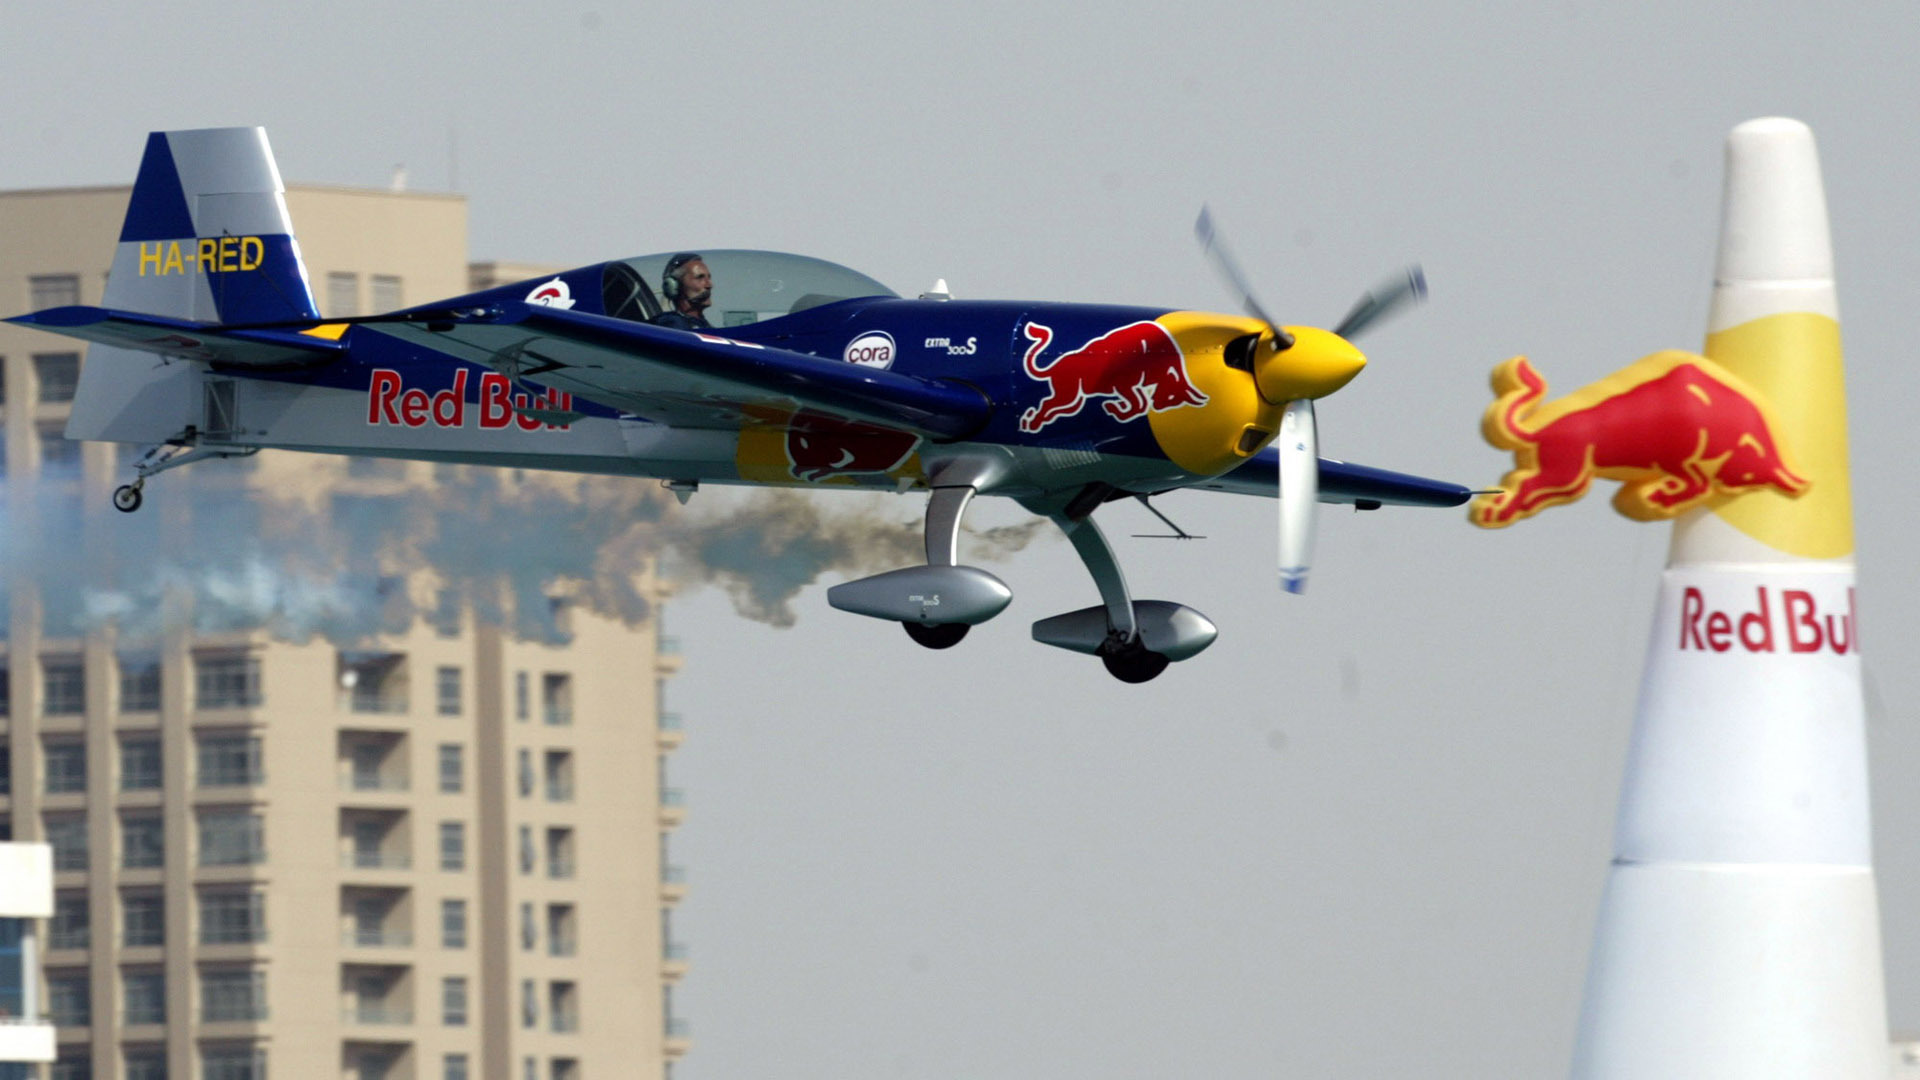 Aircraft hungary Red Bull HD Wallpaper